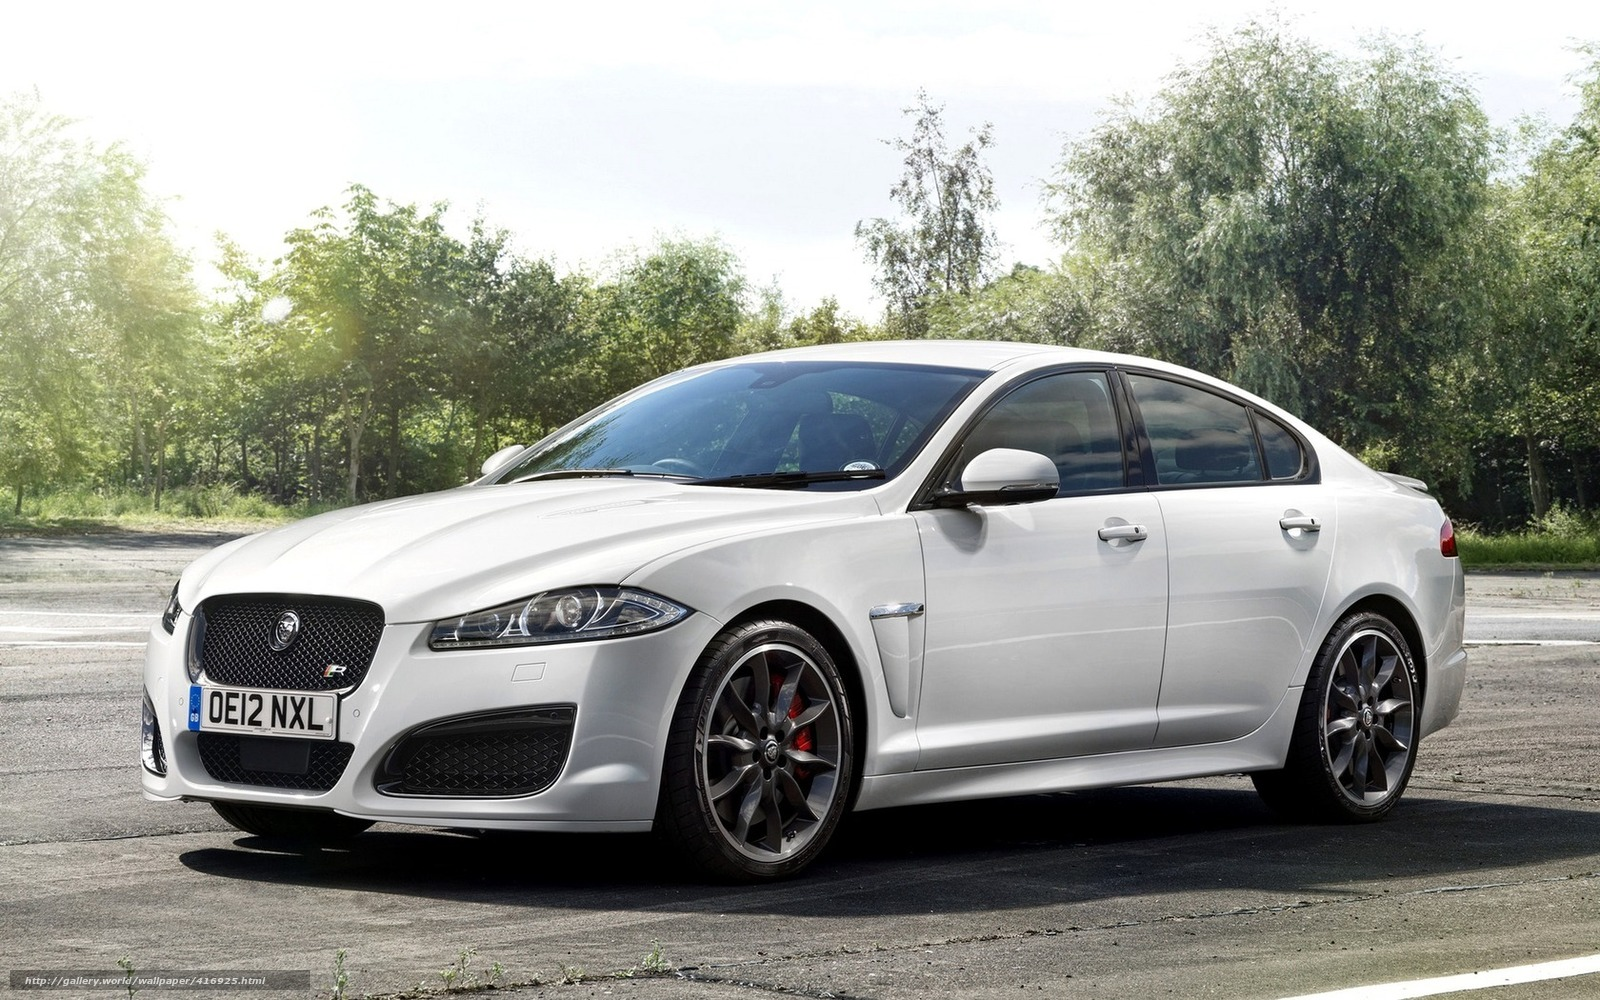 download wallpaper car wallpaper white jaguar free